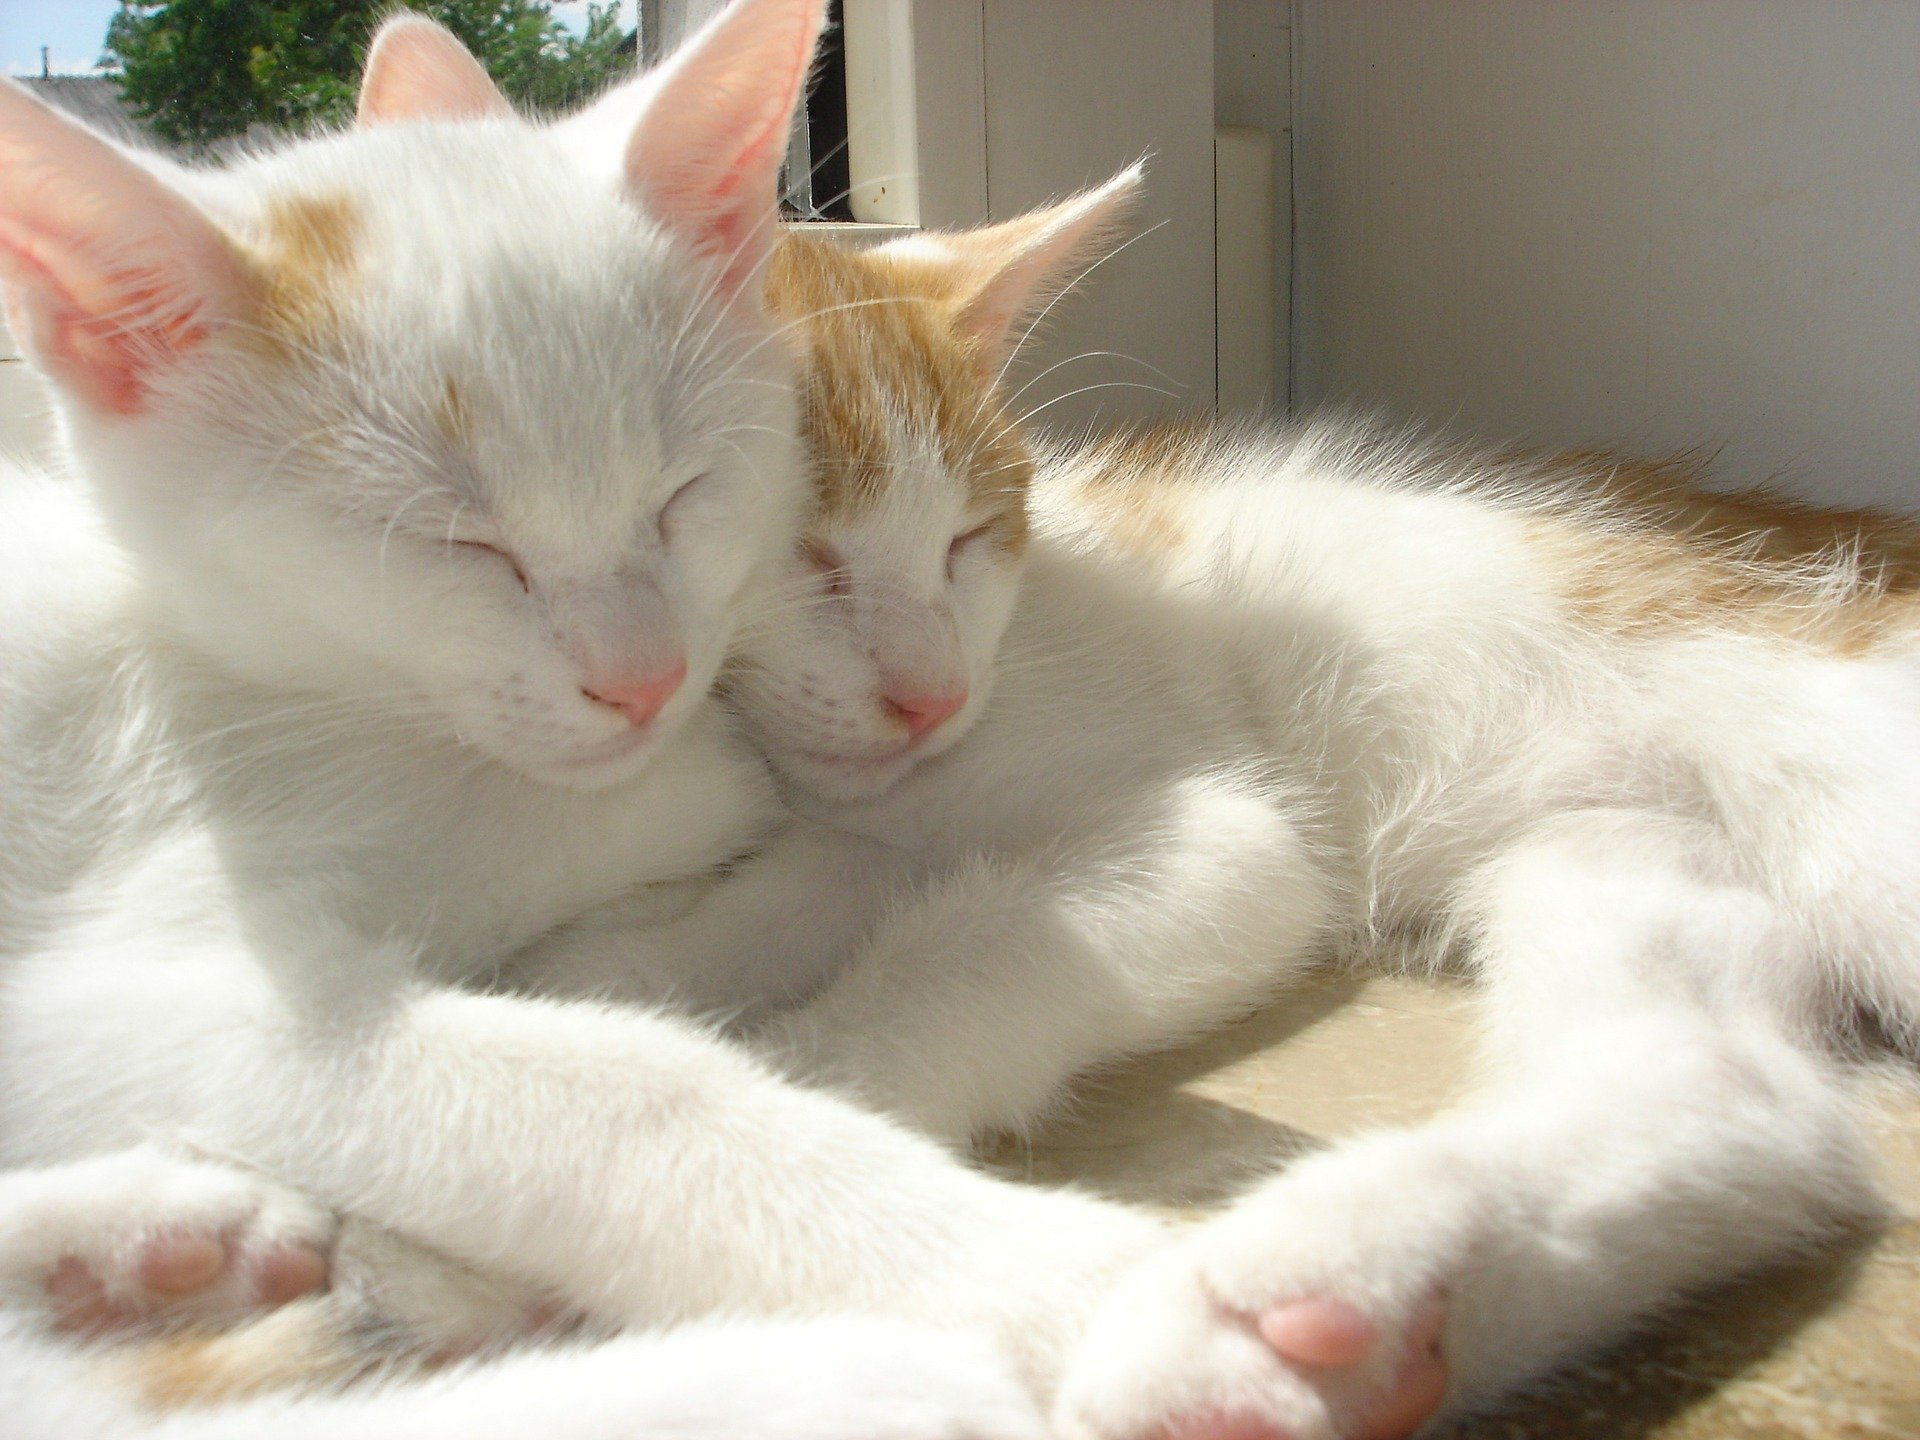 Kitties. Click to see more of Adorable Animal Pictures for Valentine's Day | Animals Zone